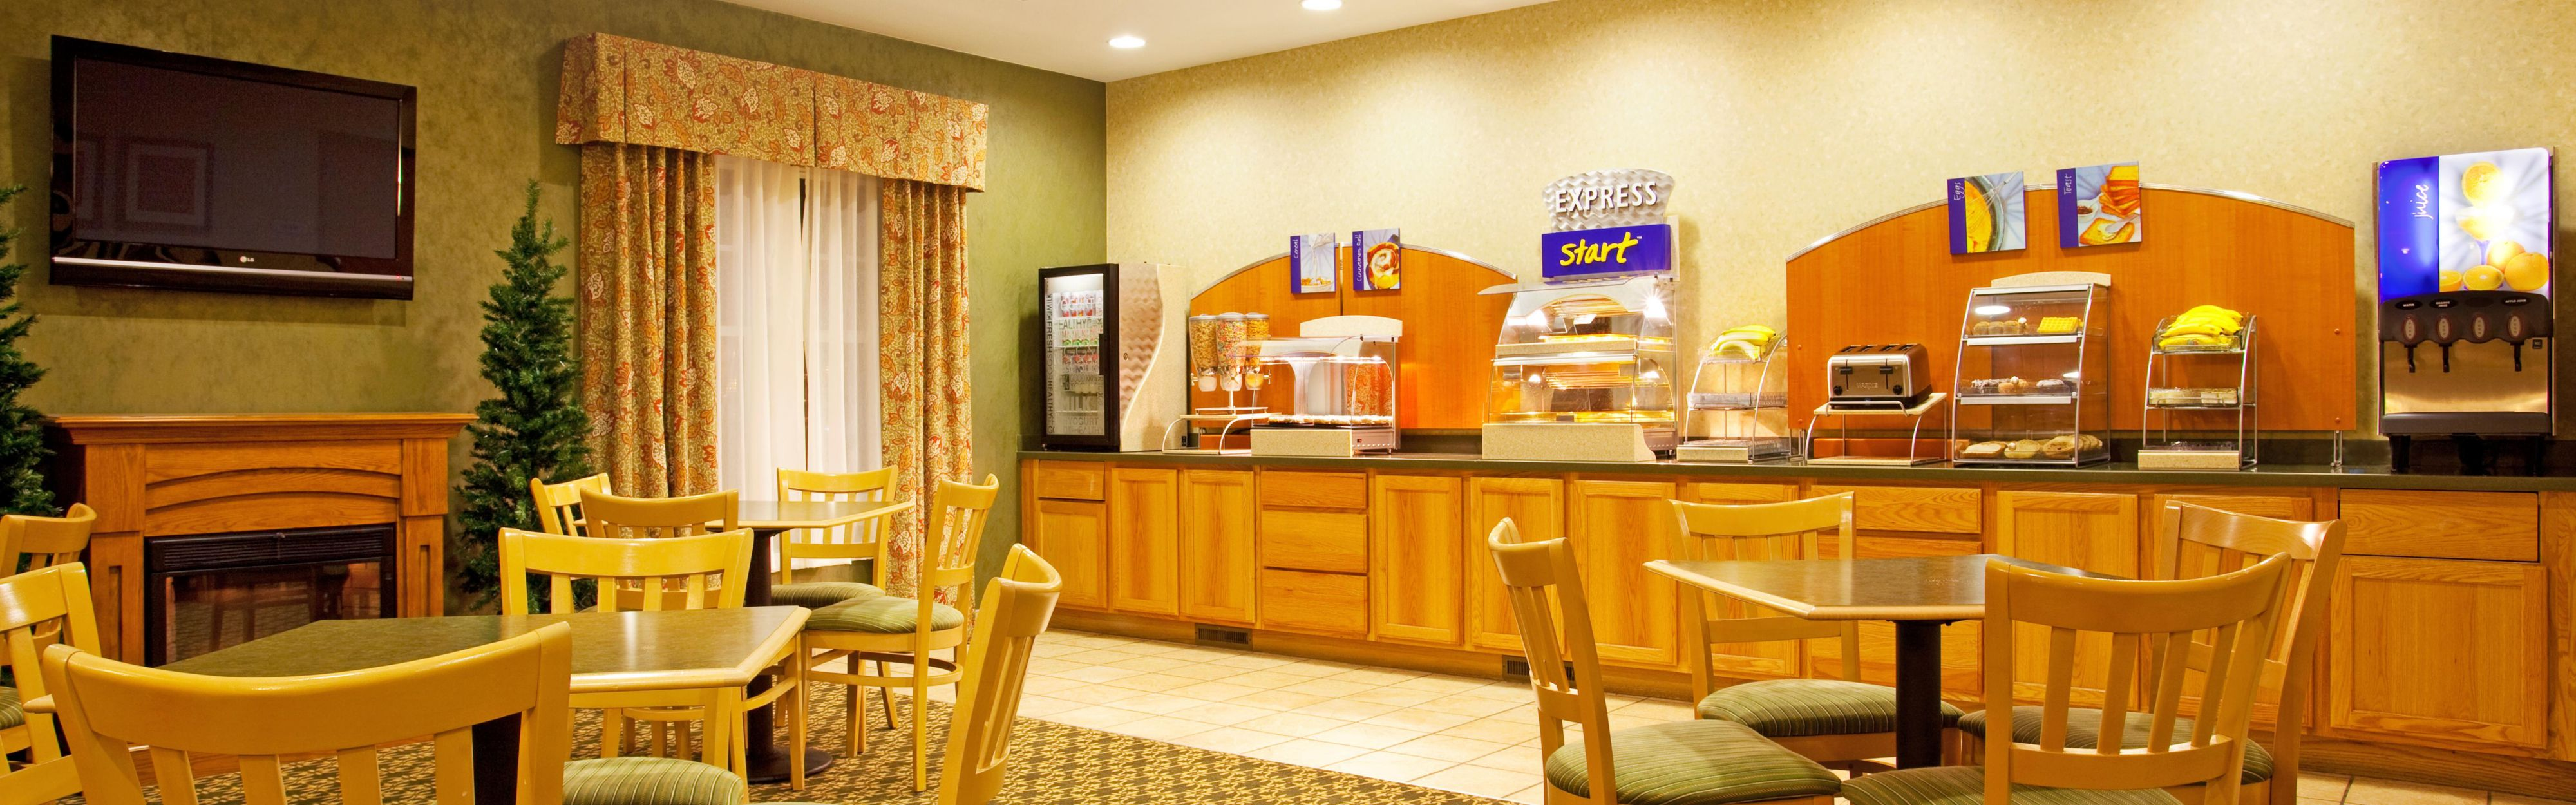 Holiday Inn Express & Suites Iron Mountain image 3